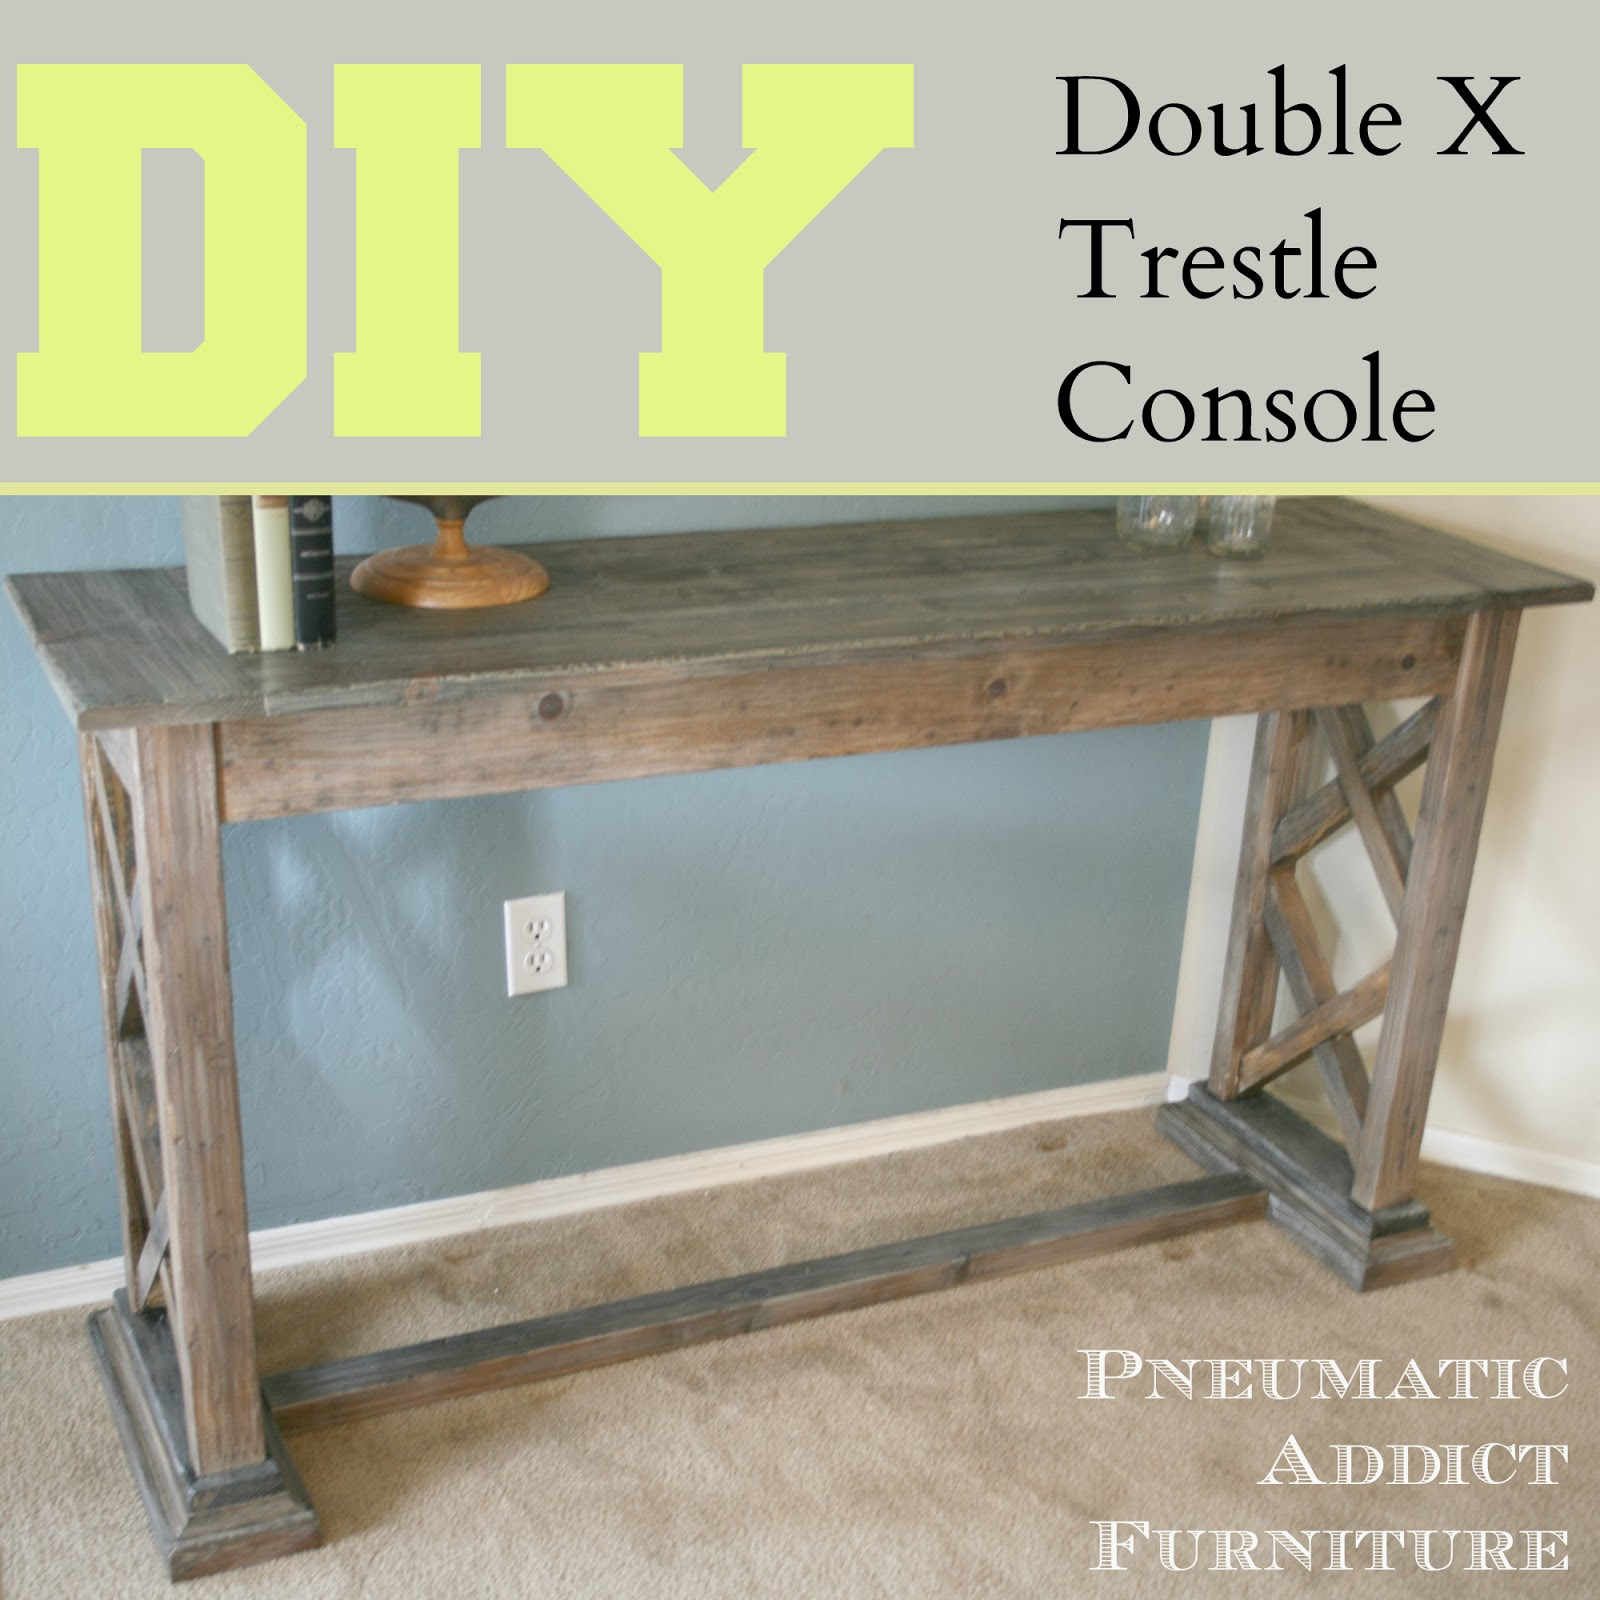 Double X Trestle Console Pneumatic Addict